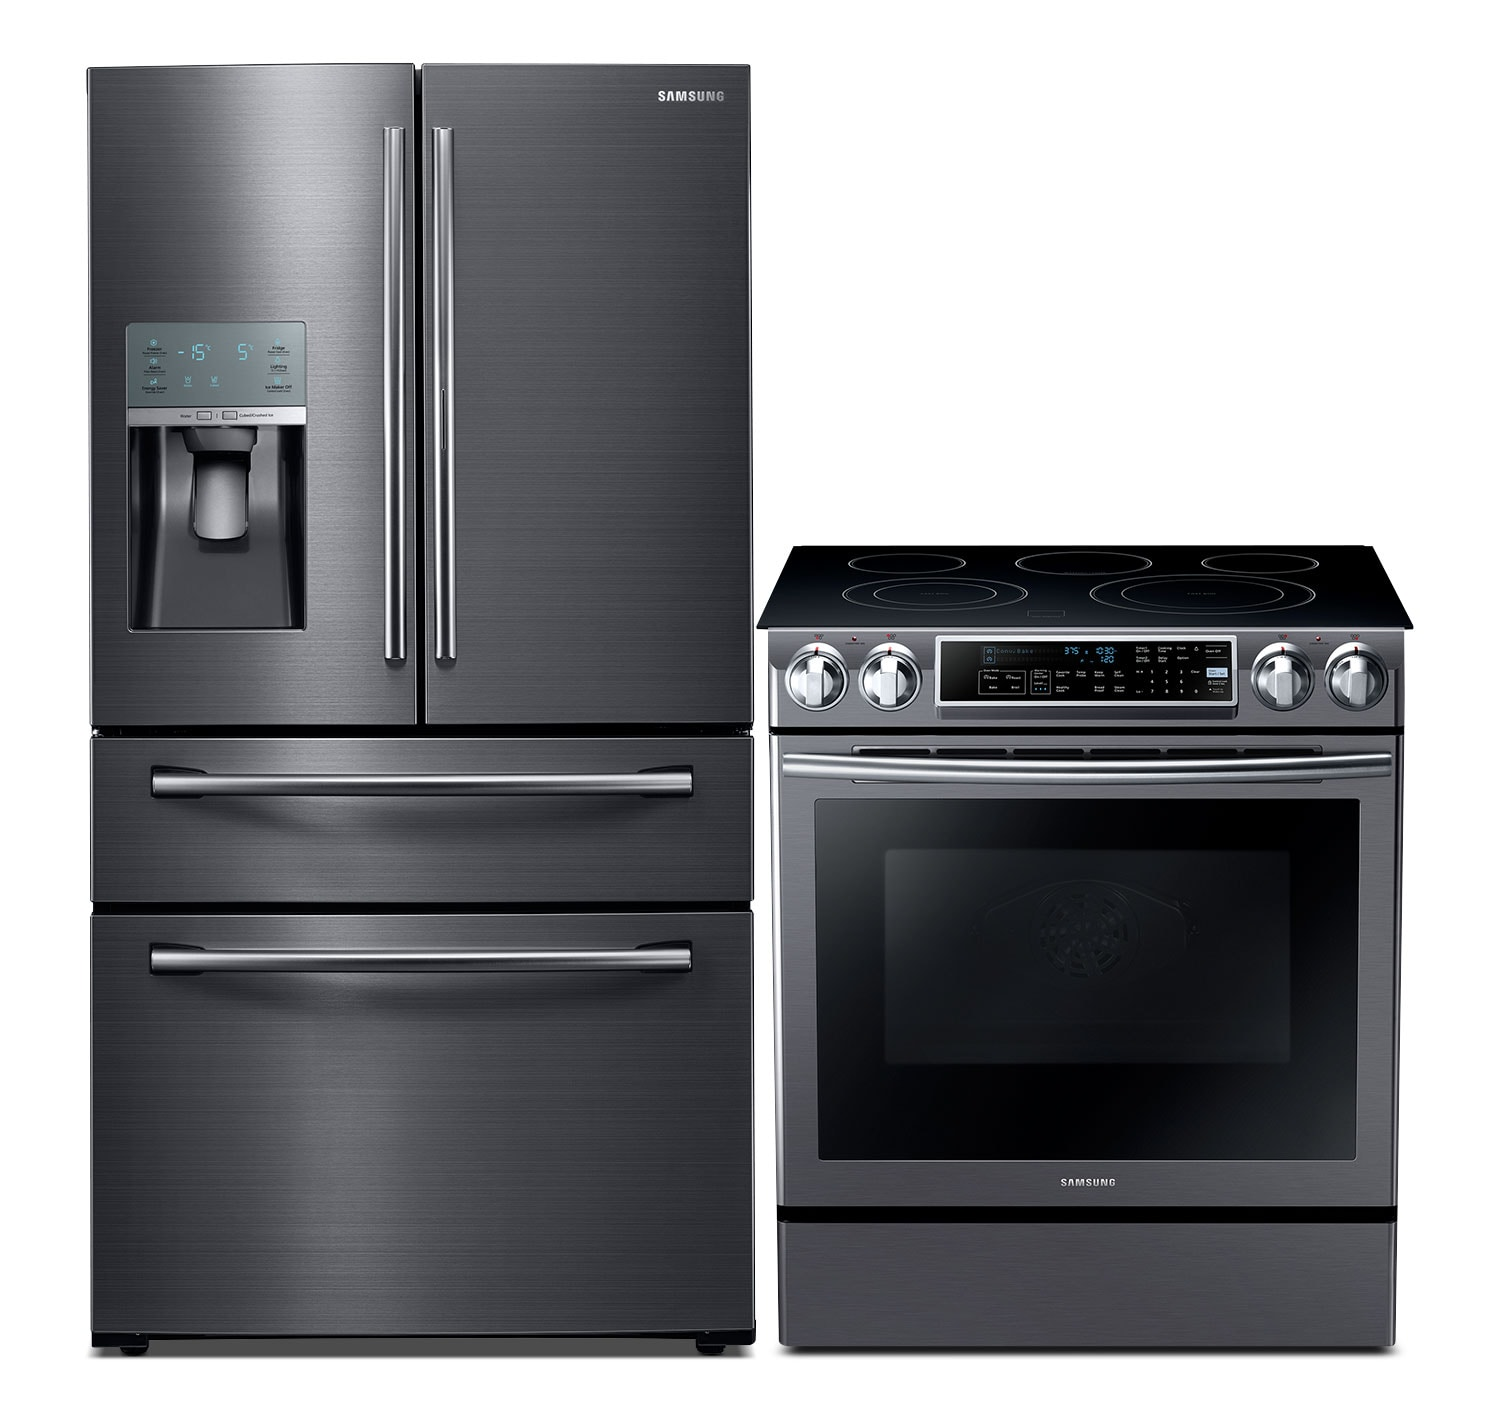 Refrigerators and Freezers - Samsung 27.8 Cu. Ft. Refrigerator and 5.8 Cu. Ft. Electric Range – Black Stainless Steel